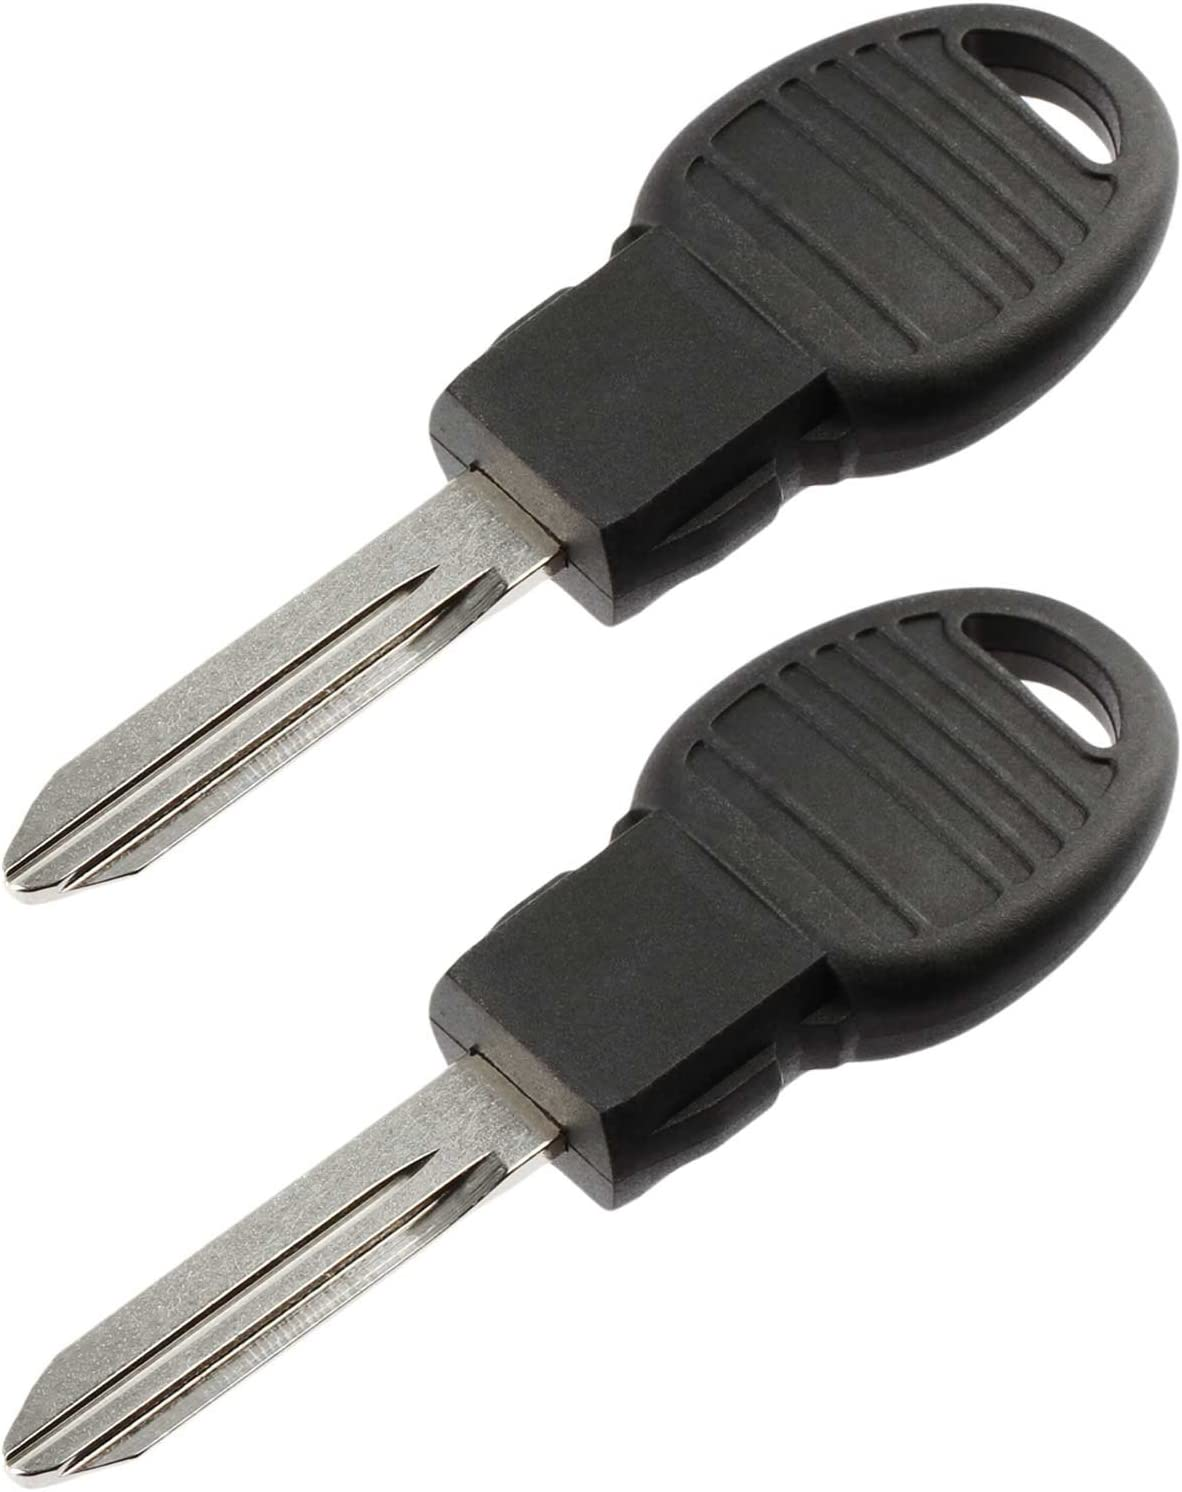 Dodge fits 46 Chip Y164-PT USARemote Uncut Transponder Ignition Key fits Chrysler Jeep